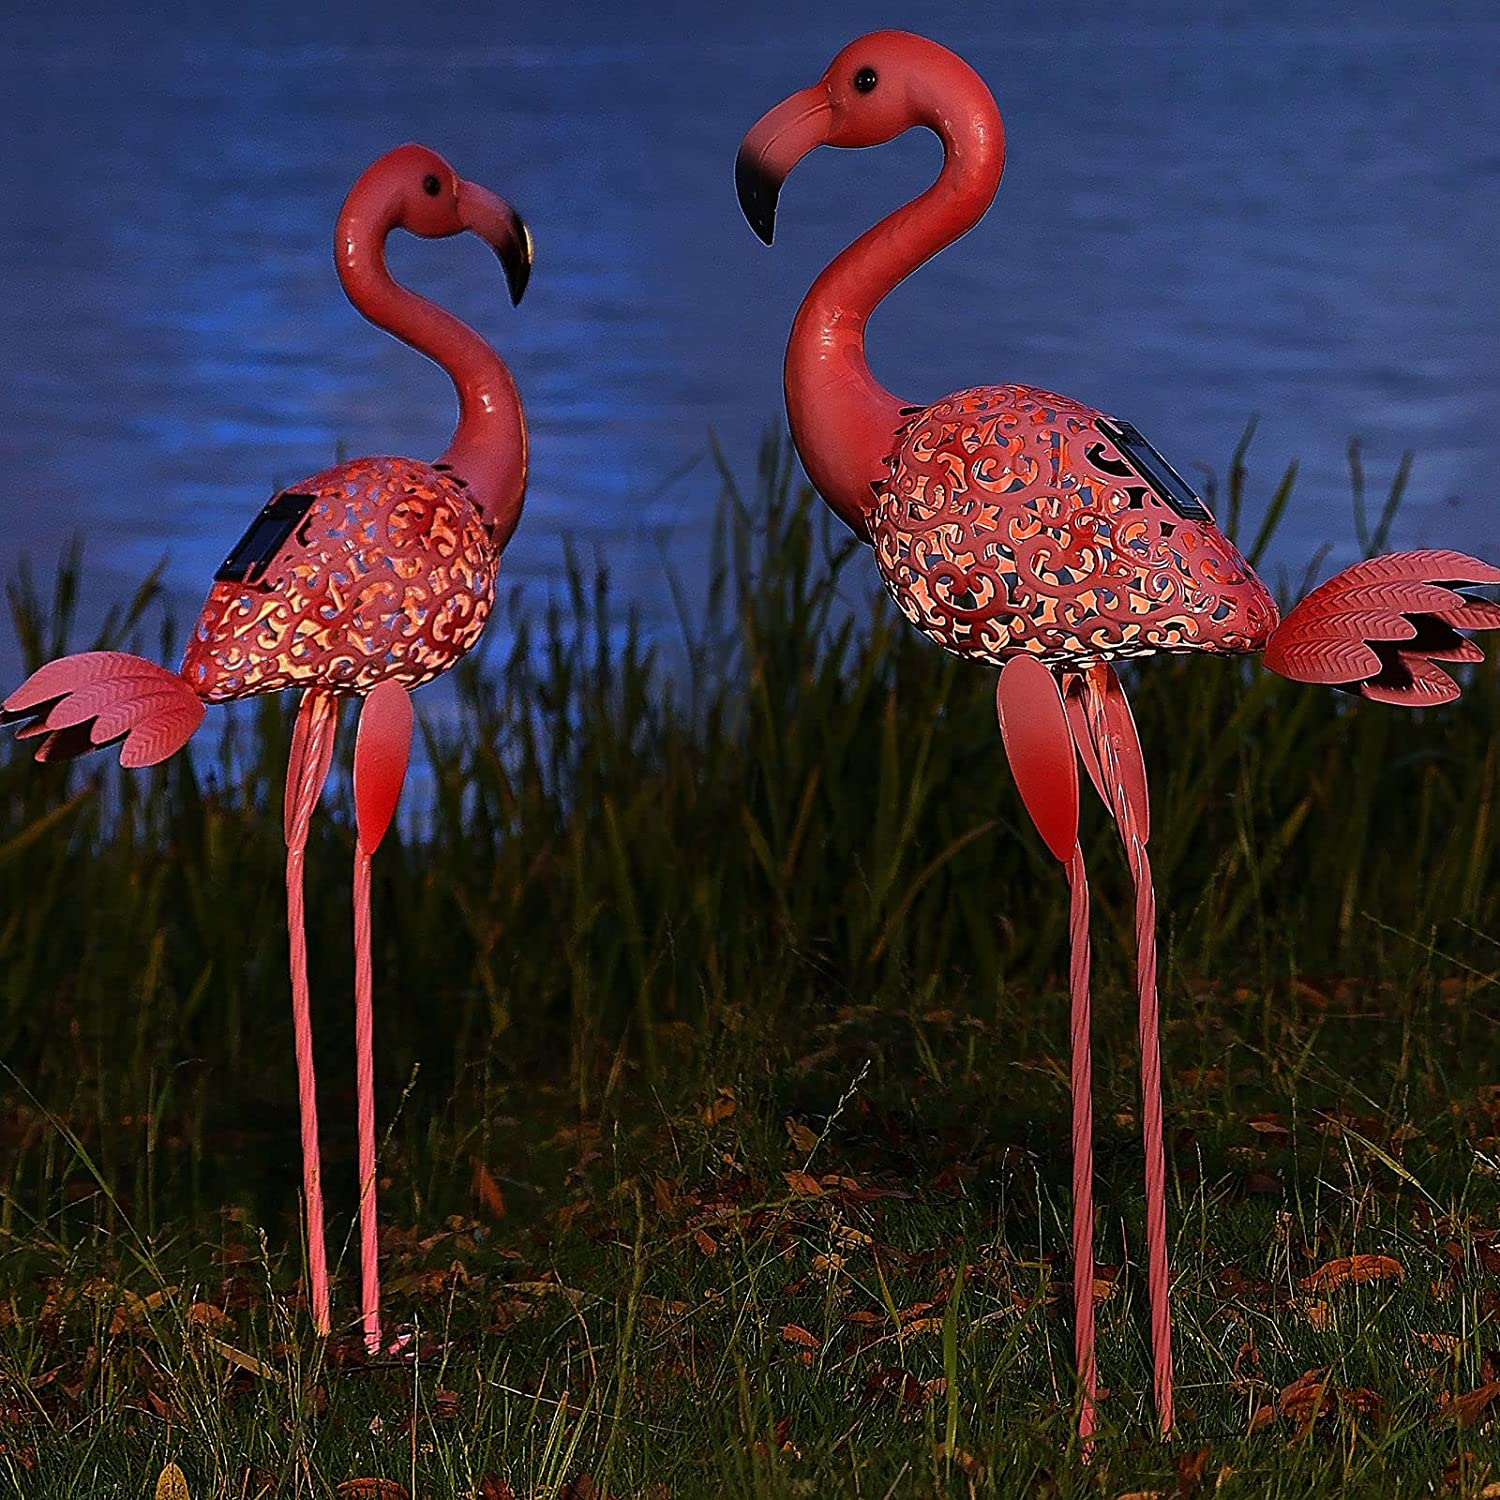 Flamingo Garden Statues with Solar Lights, Pink Flamingo Yard Decorations Metal Birds Yard Art Lawn Ornaments with Decorative Light for Outdoor Patio Pathway Garden Decor